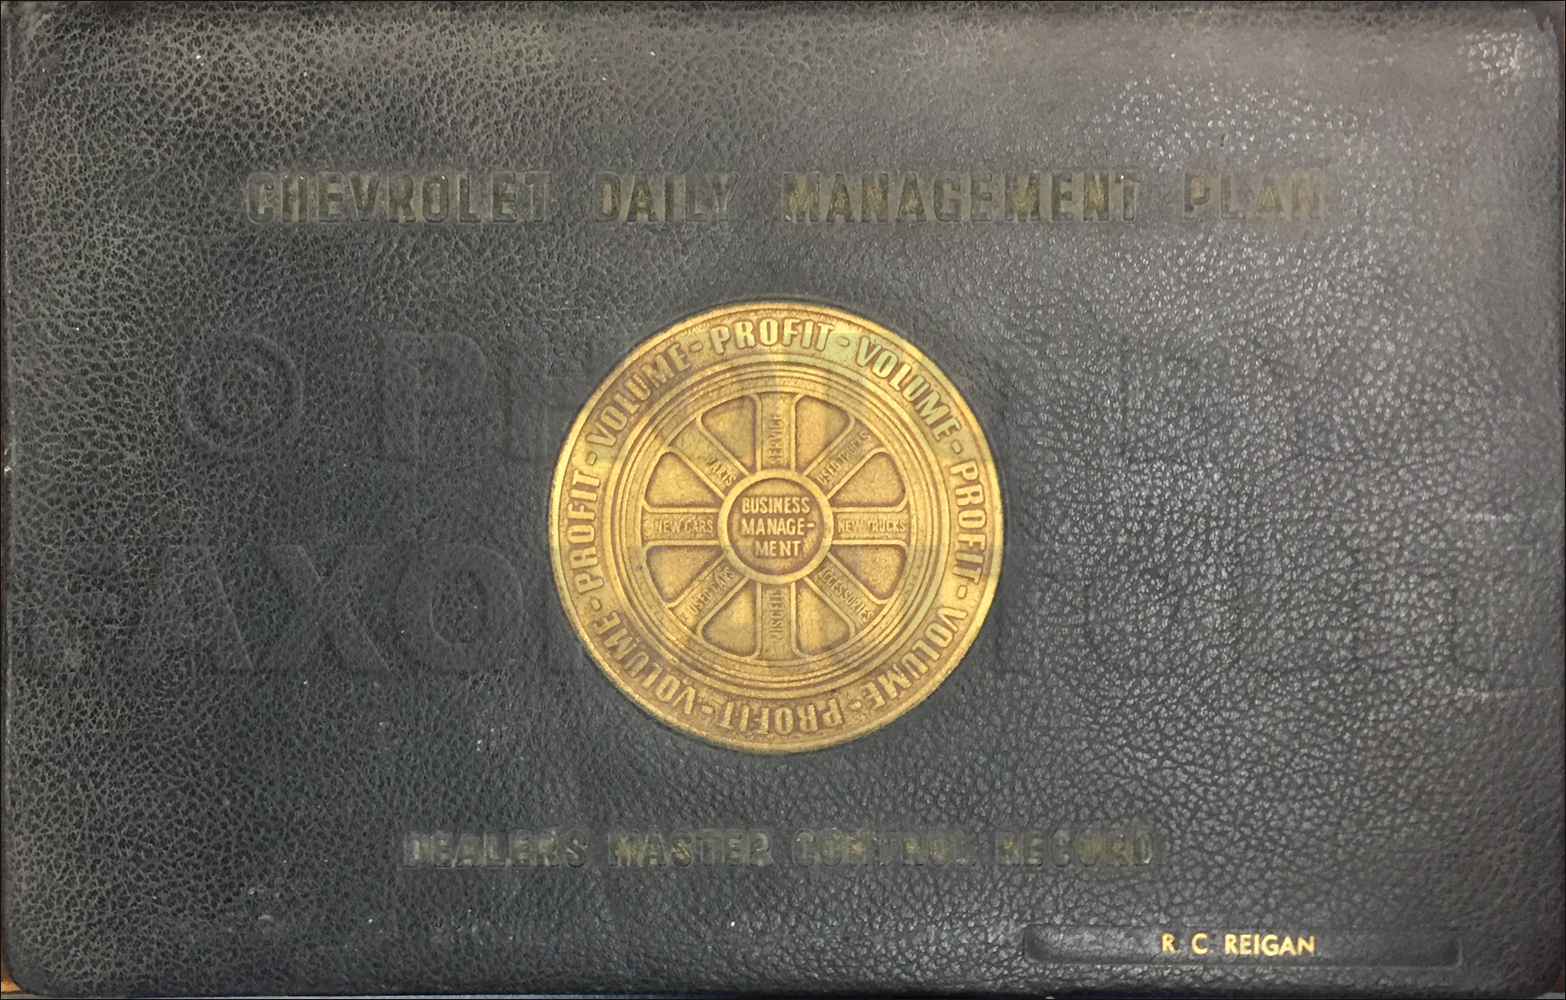 1948 Chevrolet Service Manager Record Book Original